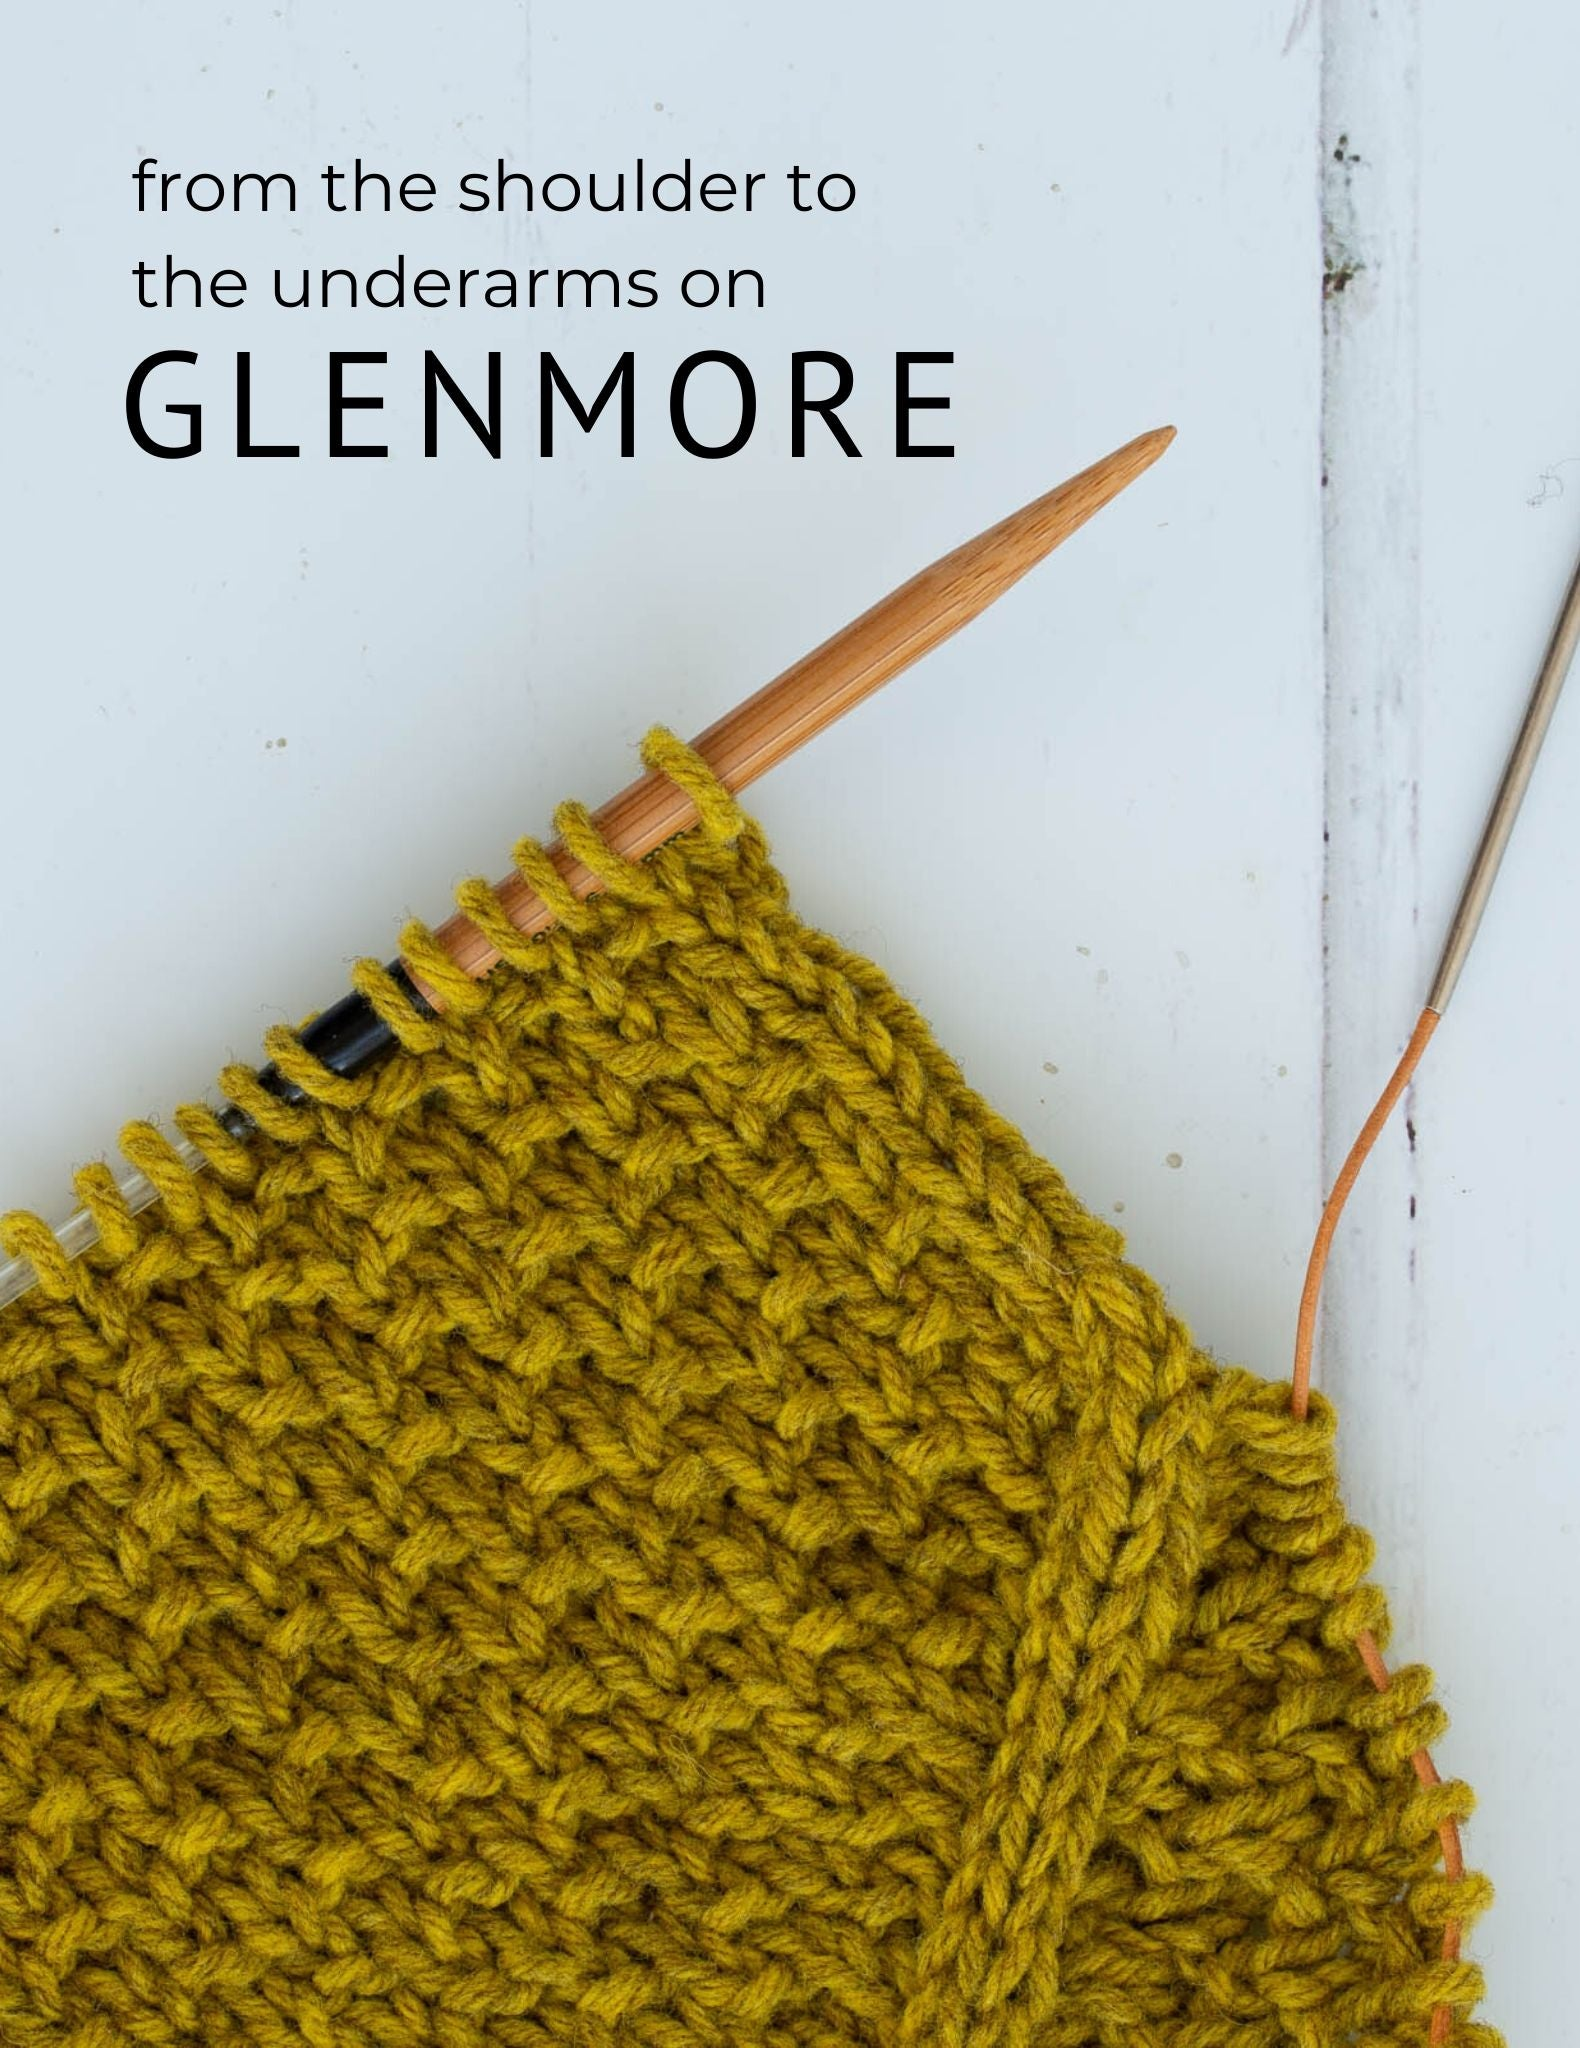 From the shoulders to the underarms on Glenmore